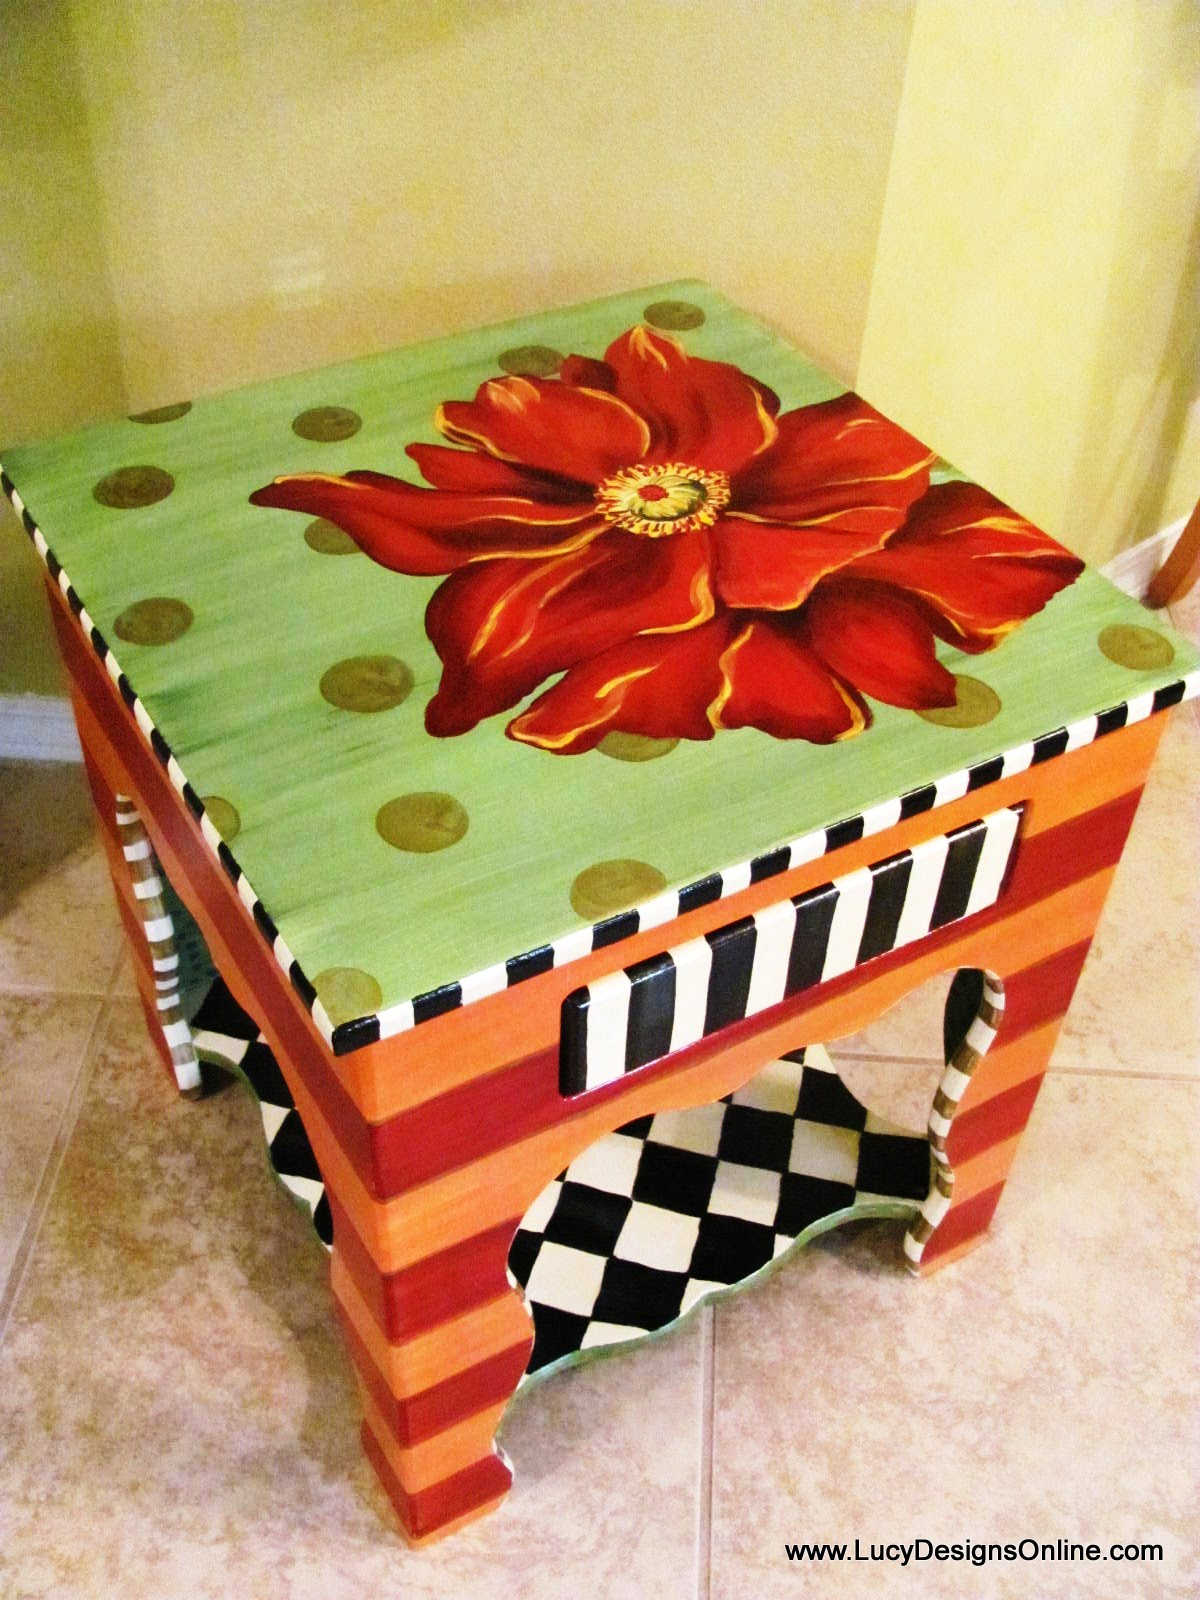 painted flower table lucy designs